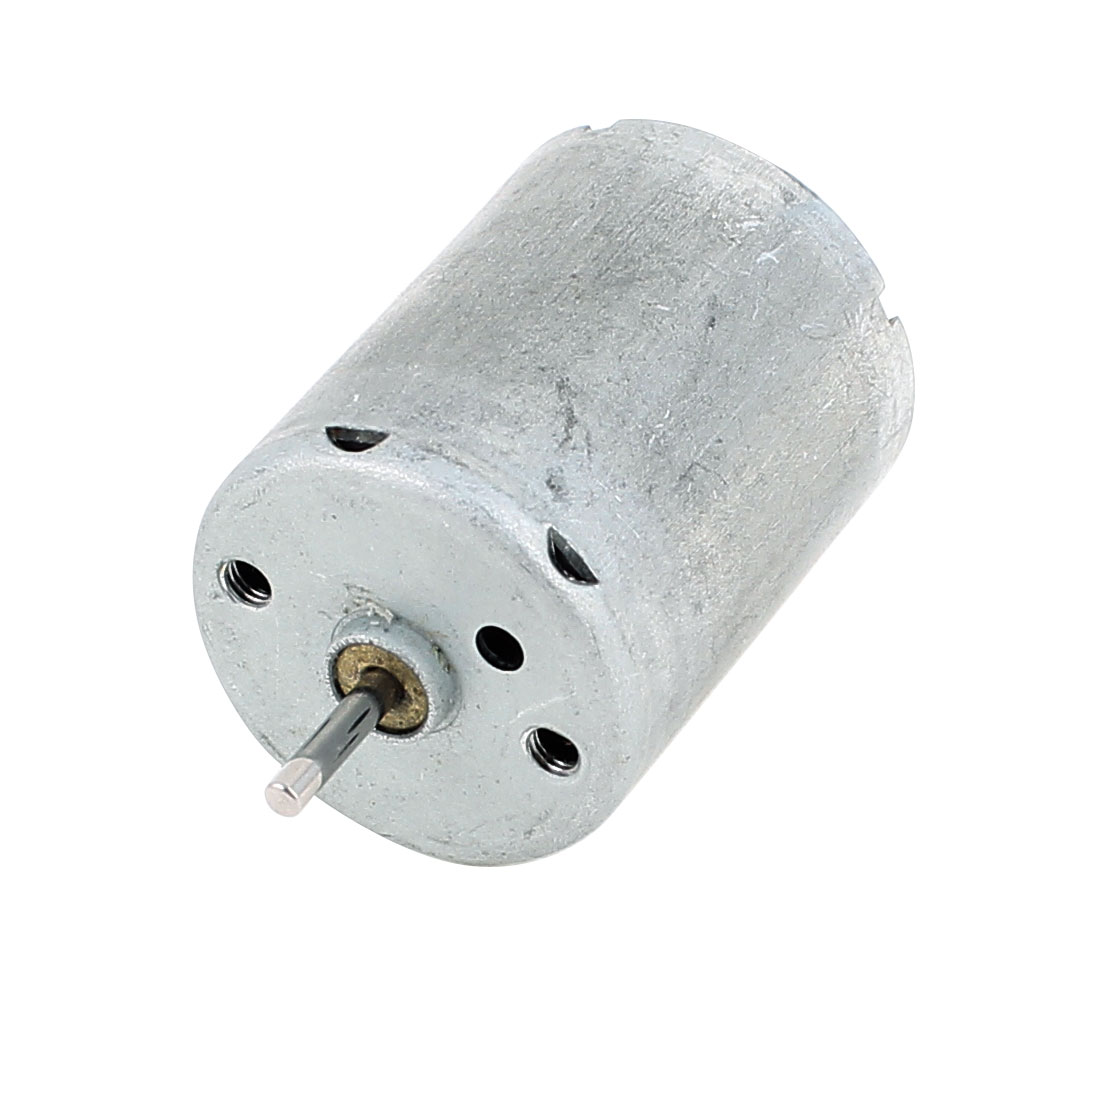 DC 6-9V 4300RPM 2mm Shaft Dia High Torque Micro Electric Motor for Hair Dryer